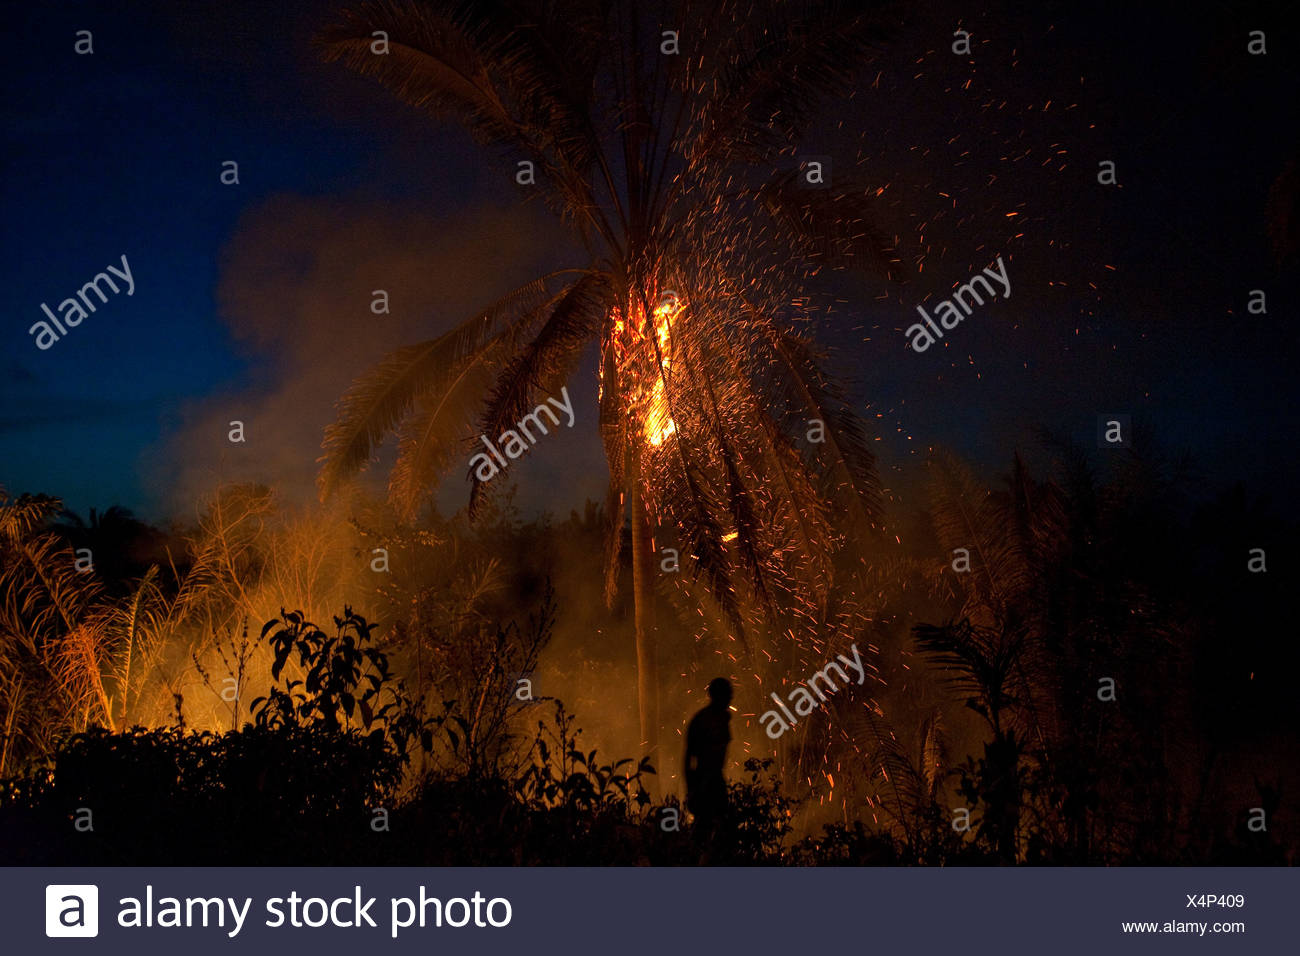 Deforestation for family farming Babaçu tree burning Clearance of land with of natural resources for agriculture Quilombo Brazil - Stock Image